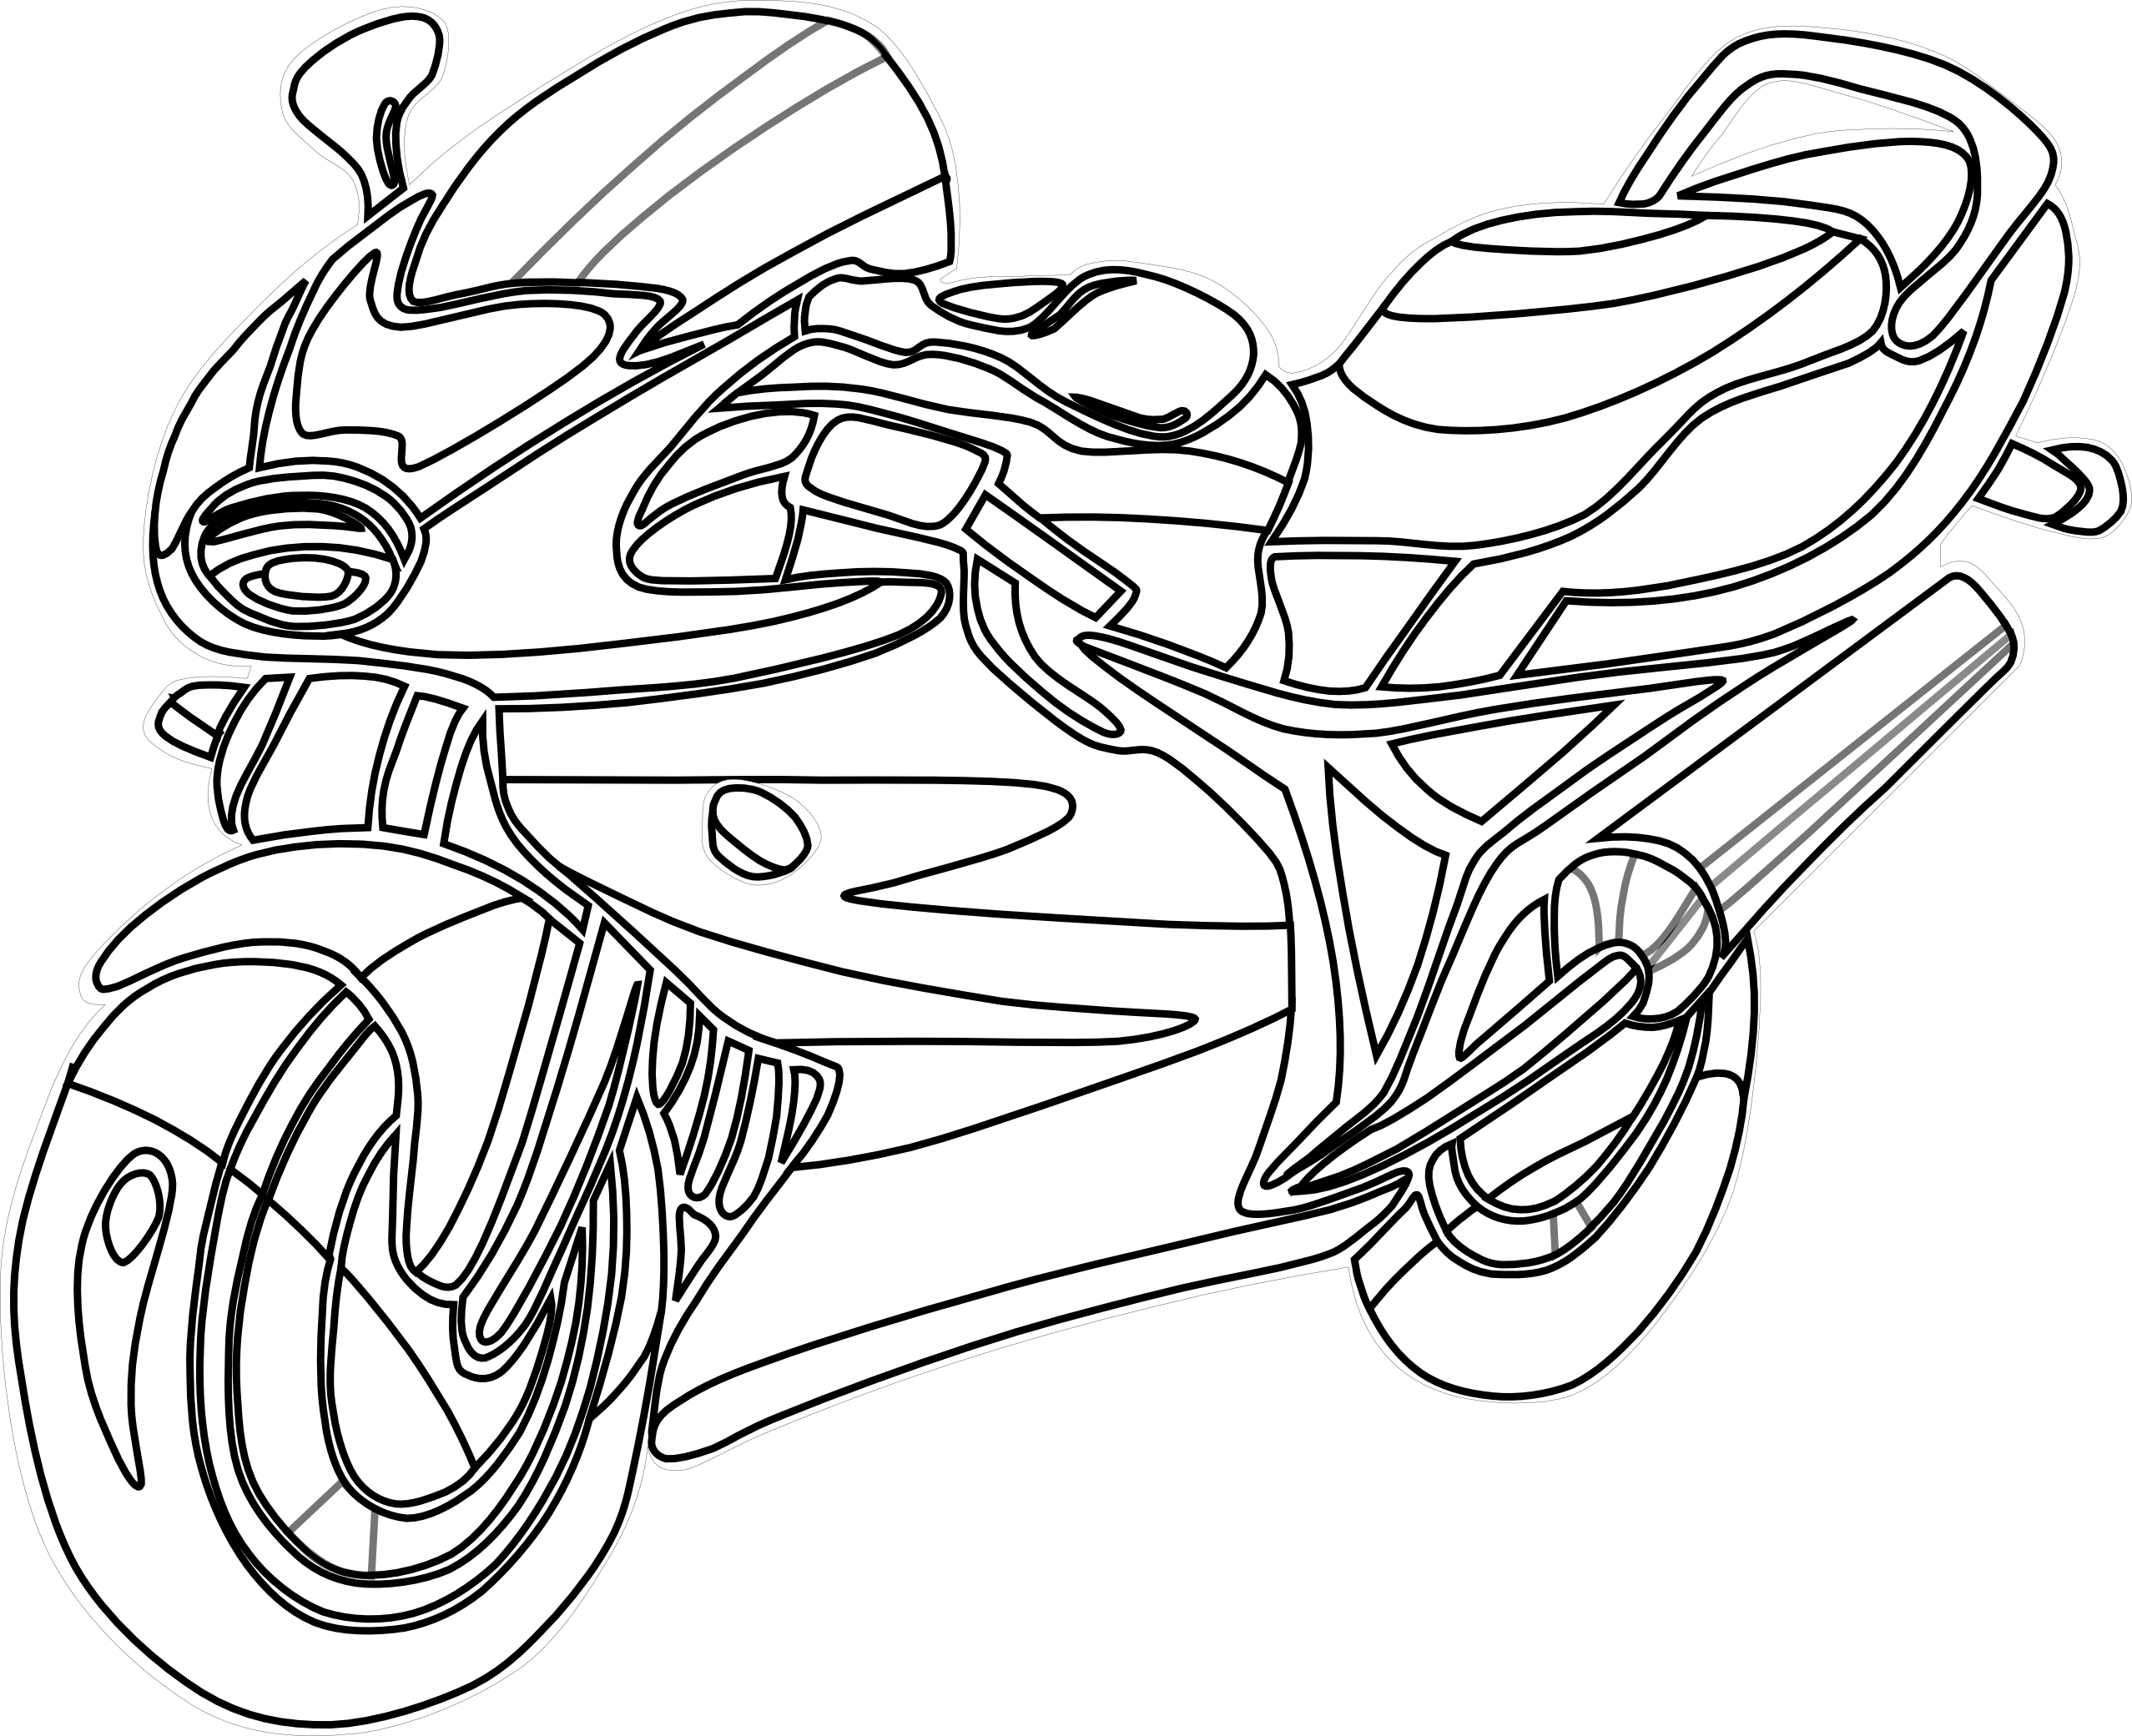 motorbike outline clipart  Motorcycle Silhouette Clip Art Free at GetDrawings.com | Free for ...